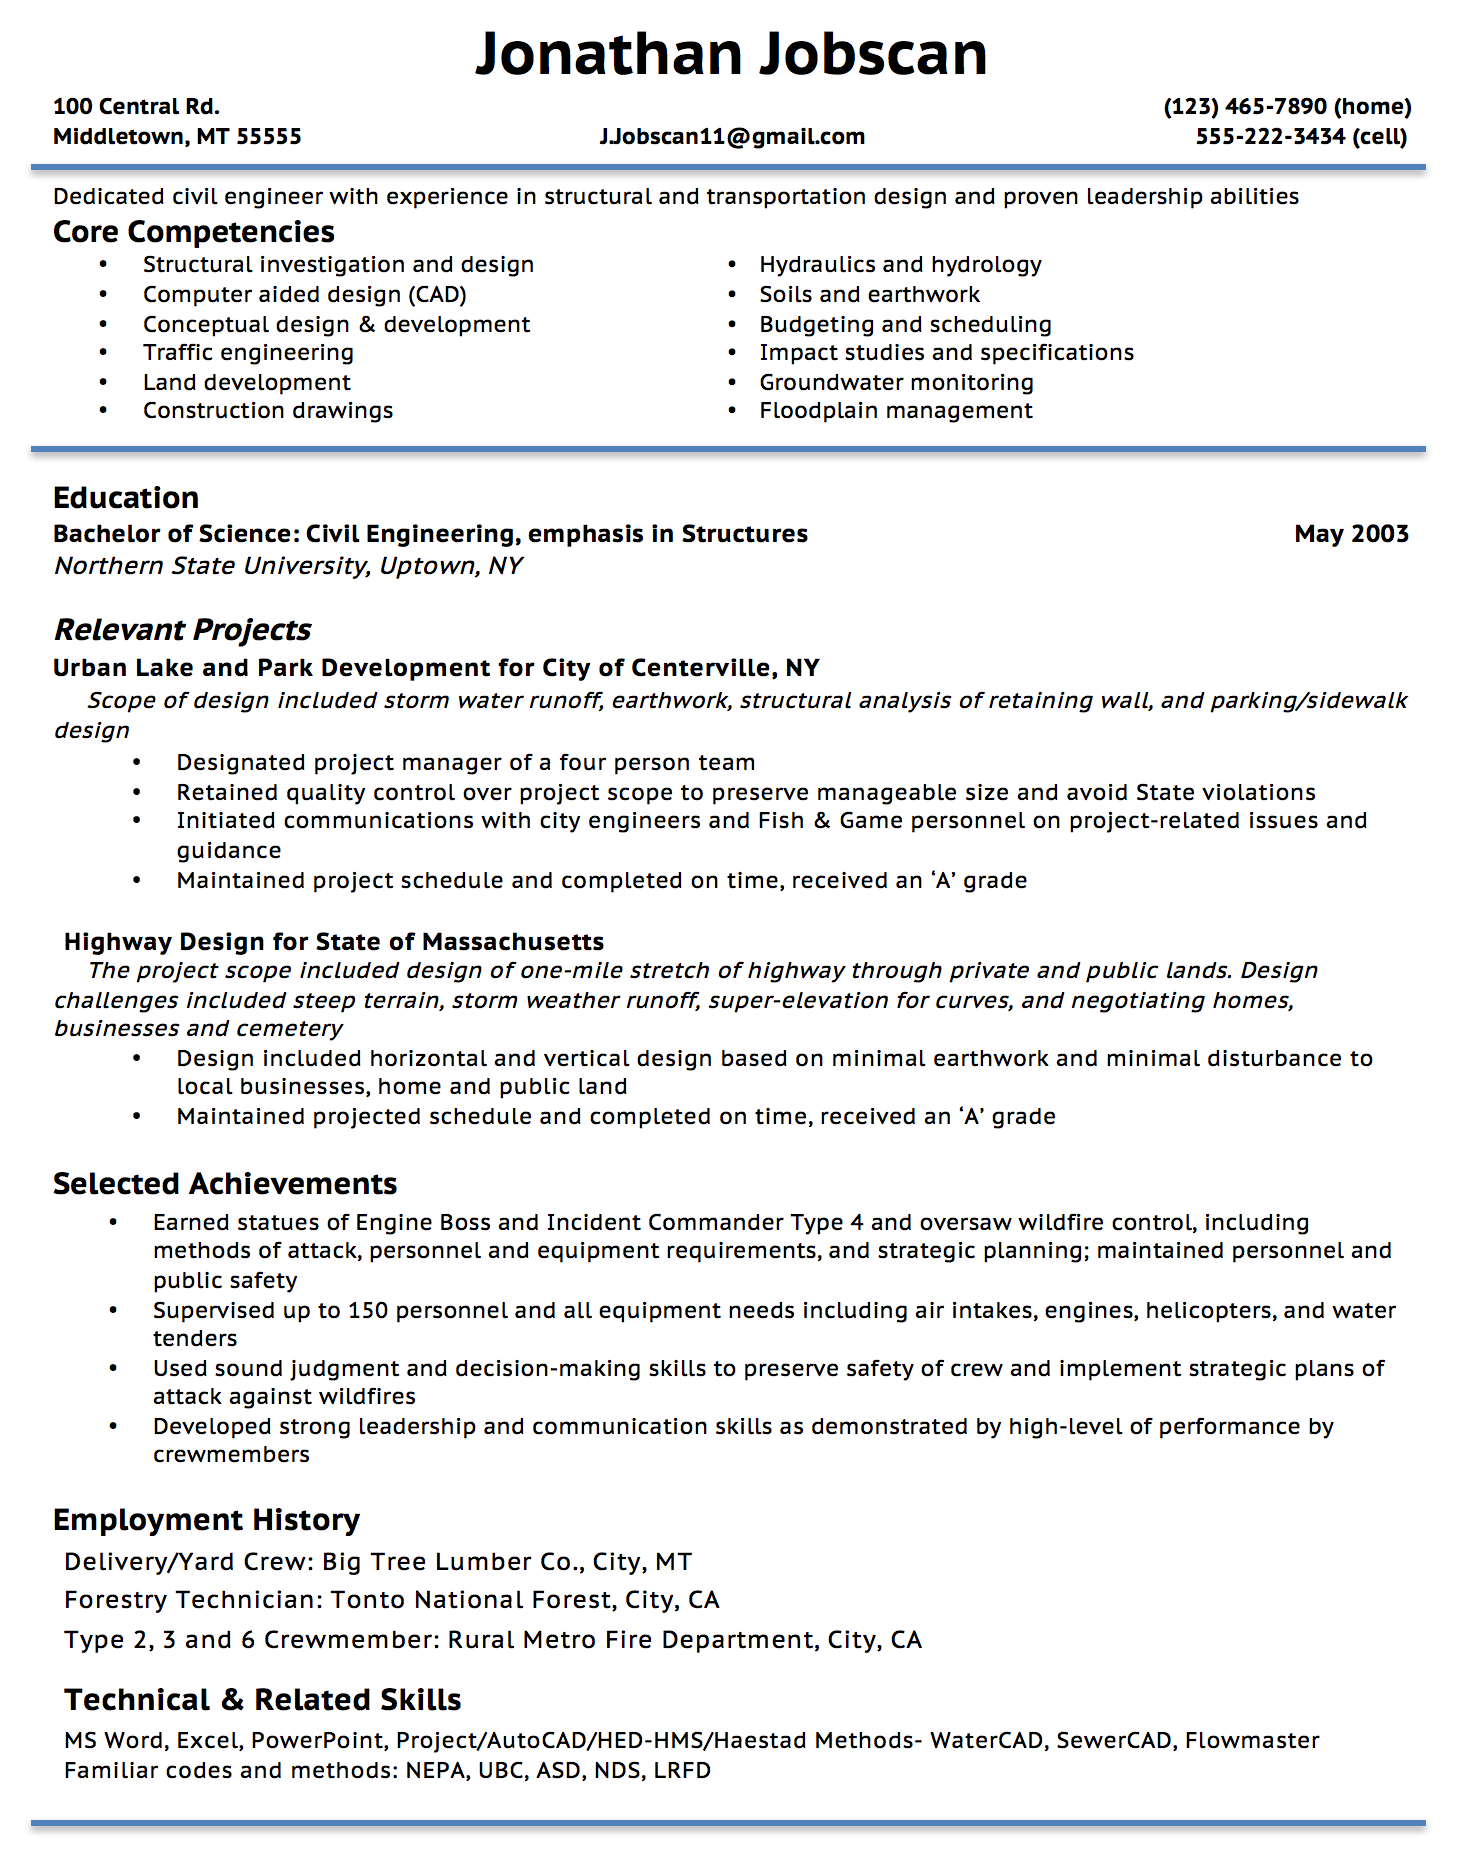 Opposenewapstandardsus  Pleasing Resume Writing Guide  Jobscan With Glamorous Example Of A Functional Resume Format With Captivating Med Surg Rn Resume Also Customer Service Sales Resume In Addition I Need Help With My Resume And Qa Resume Sample As Well As Resum E Additionally Sql Dba Resume From Jobscanco With Opposenewapstandardsus  Glamorous Resume Writing Guide  Jobscan With Captivating Example Of A Functional Resume Format And Pleasing Med Surg Rn Resume Also Customer Service Sales Resume In Addition I Need Help With My Resume From Jobscanco